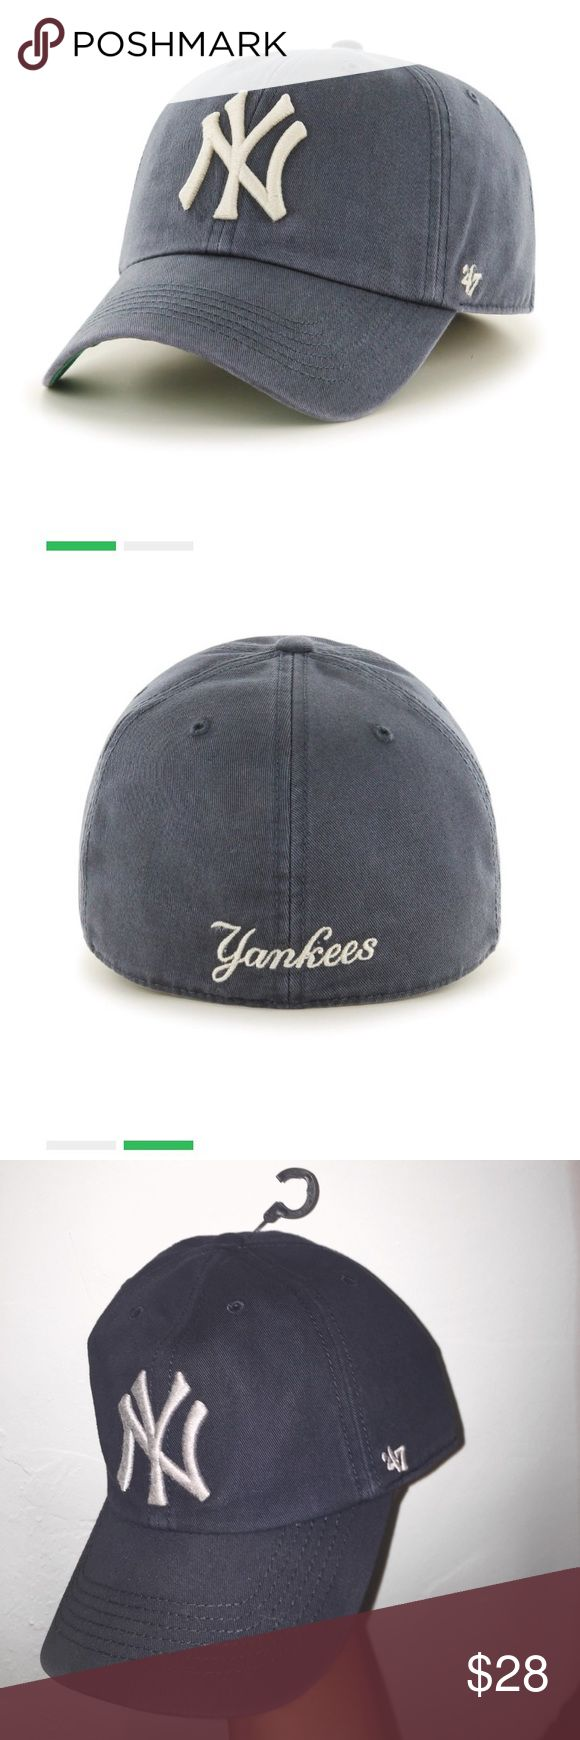 New York Yankees Fitted Baseball Cap Colour is NAVY with GRAY logo. Genuine '47 brand New York Yankees franchise. Size: 7 1/4 (58cm) LARGE. Hat is brand new never worn but like most other things in my closet I have a habit of removing tags so NWOT. Retails $35 47 Accessories Hats